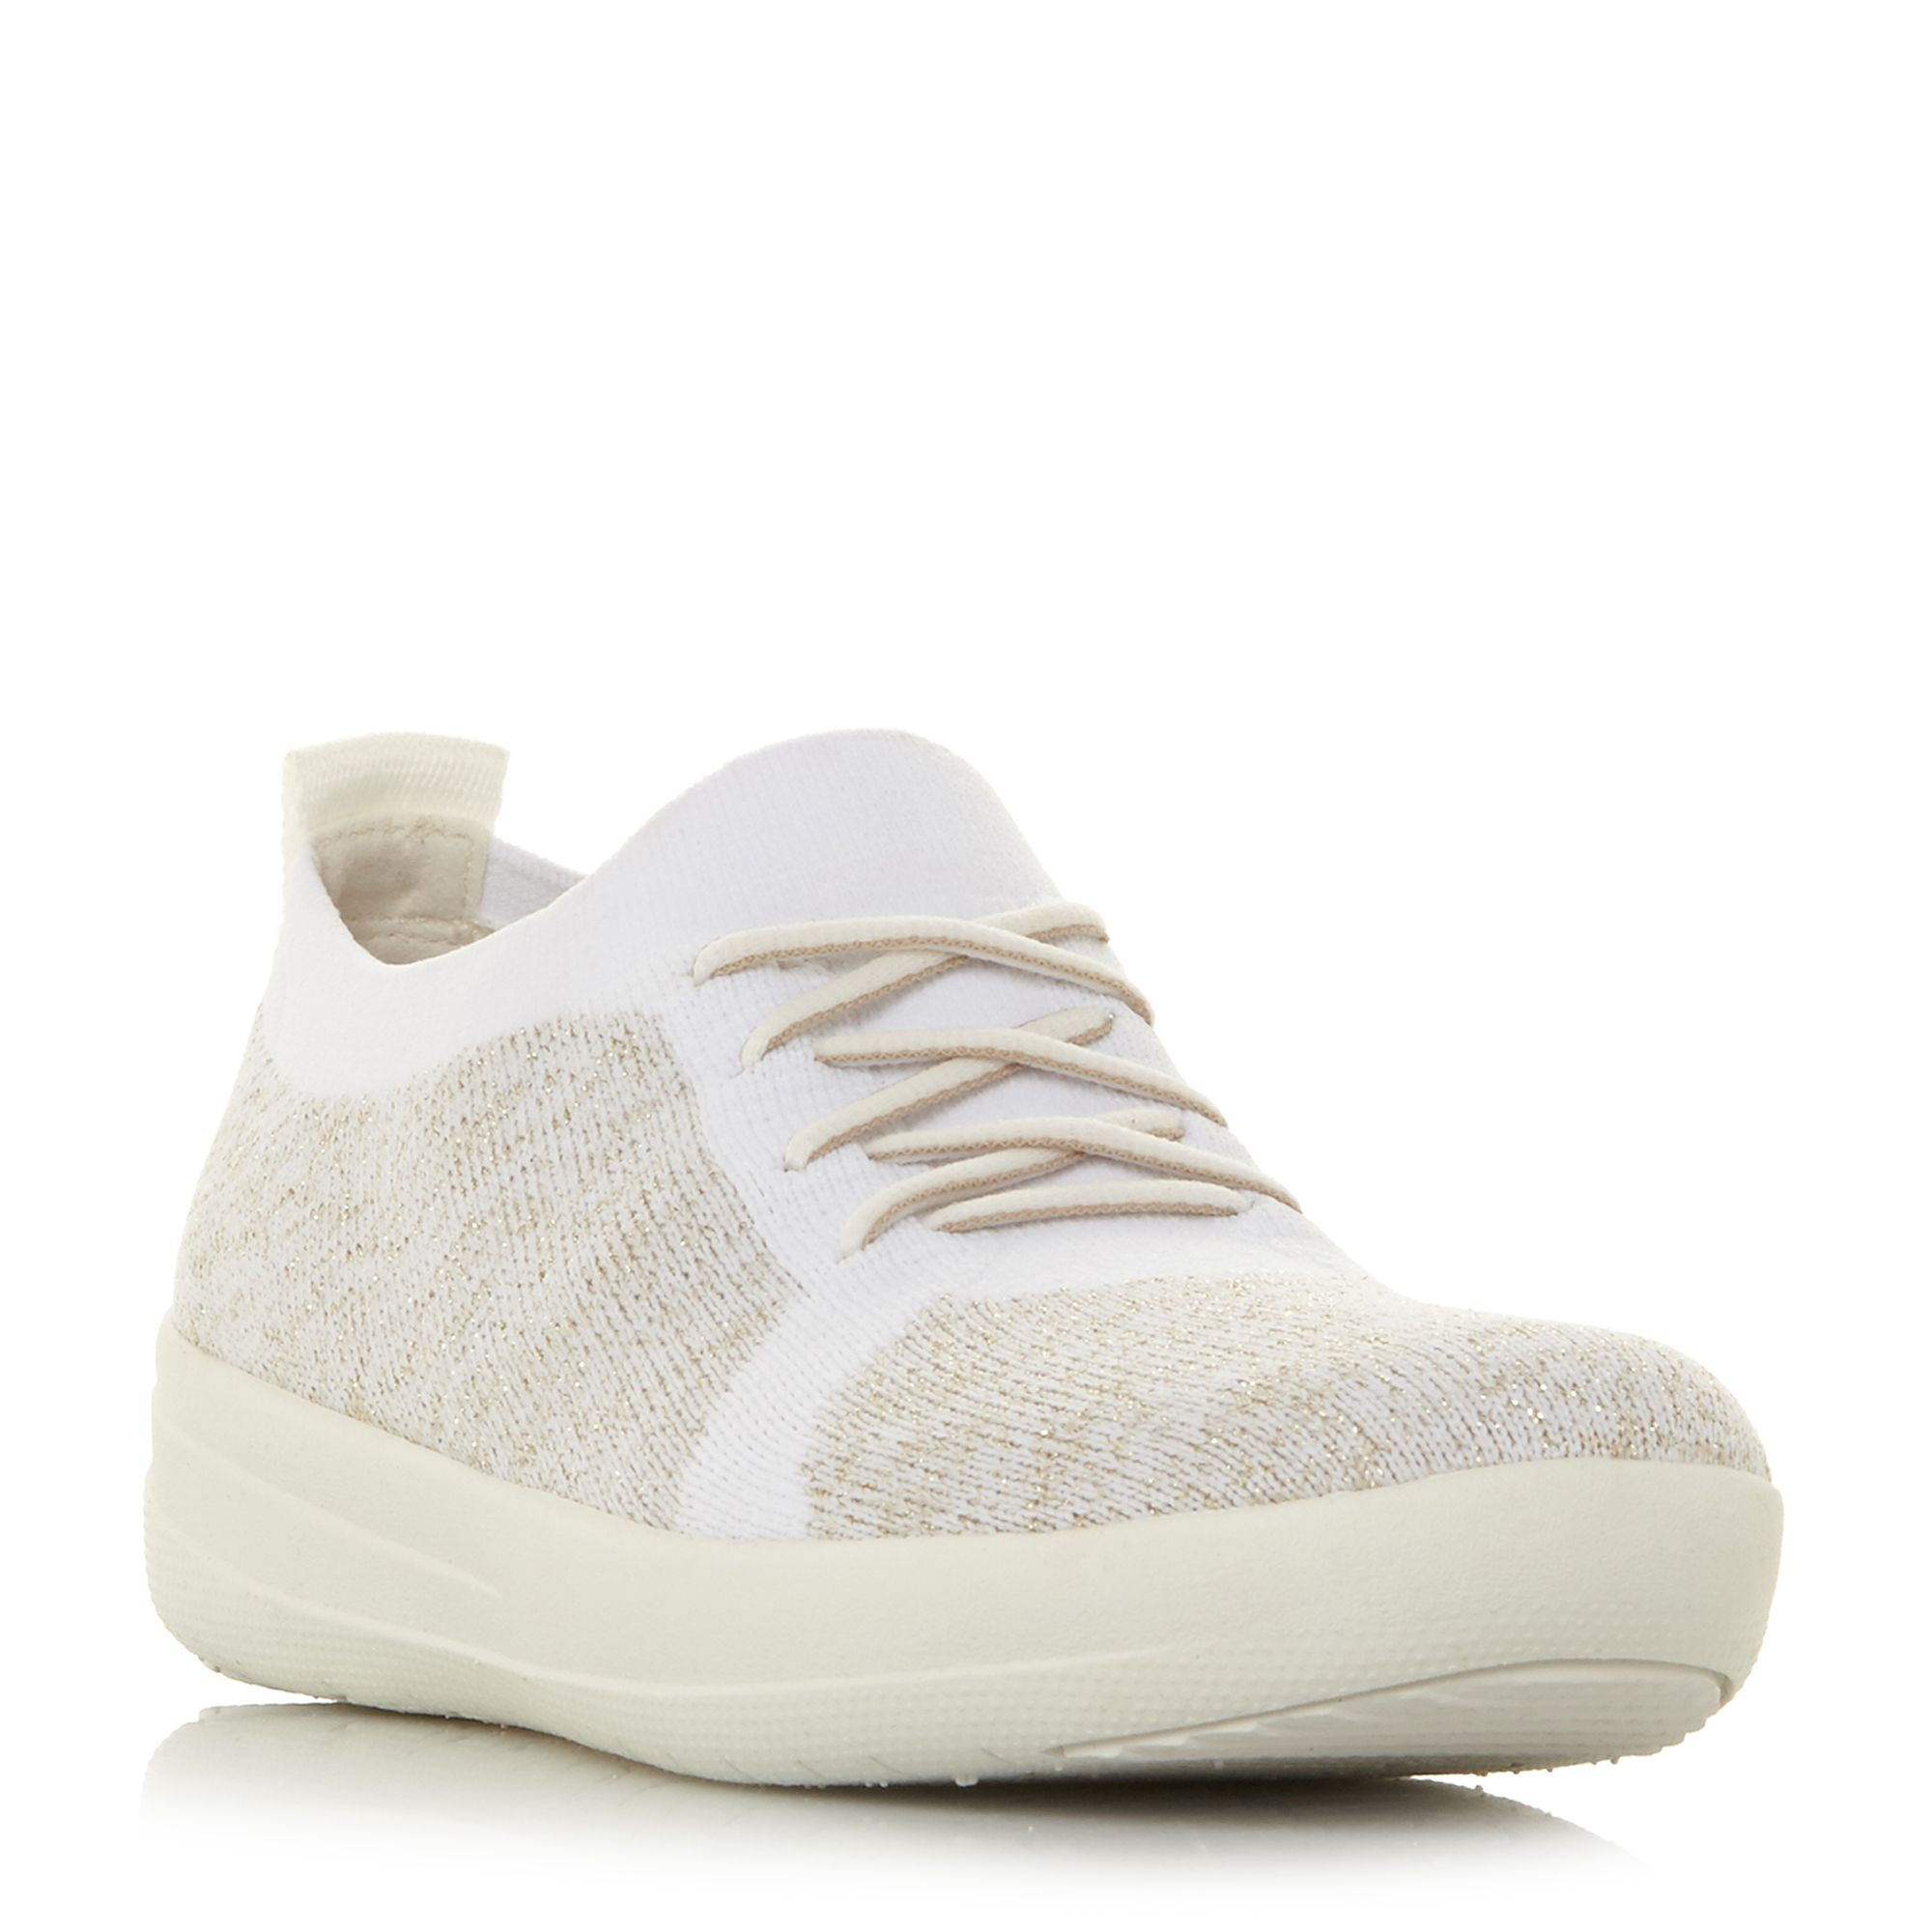 FitFlop F-Sporty Lace Up Trainers, White